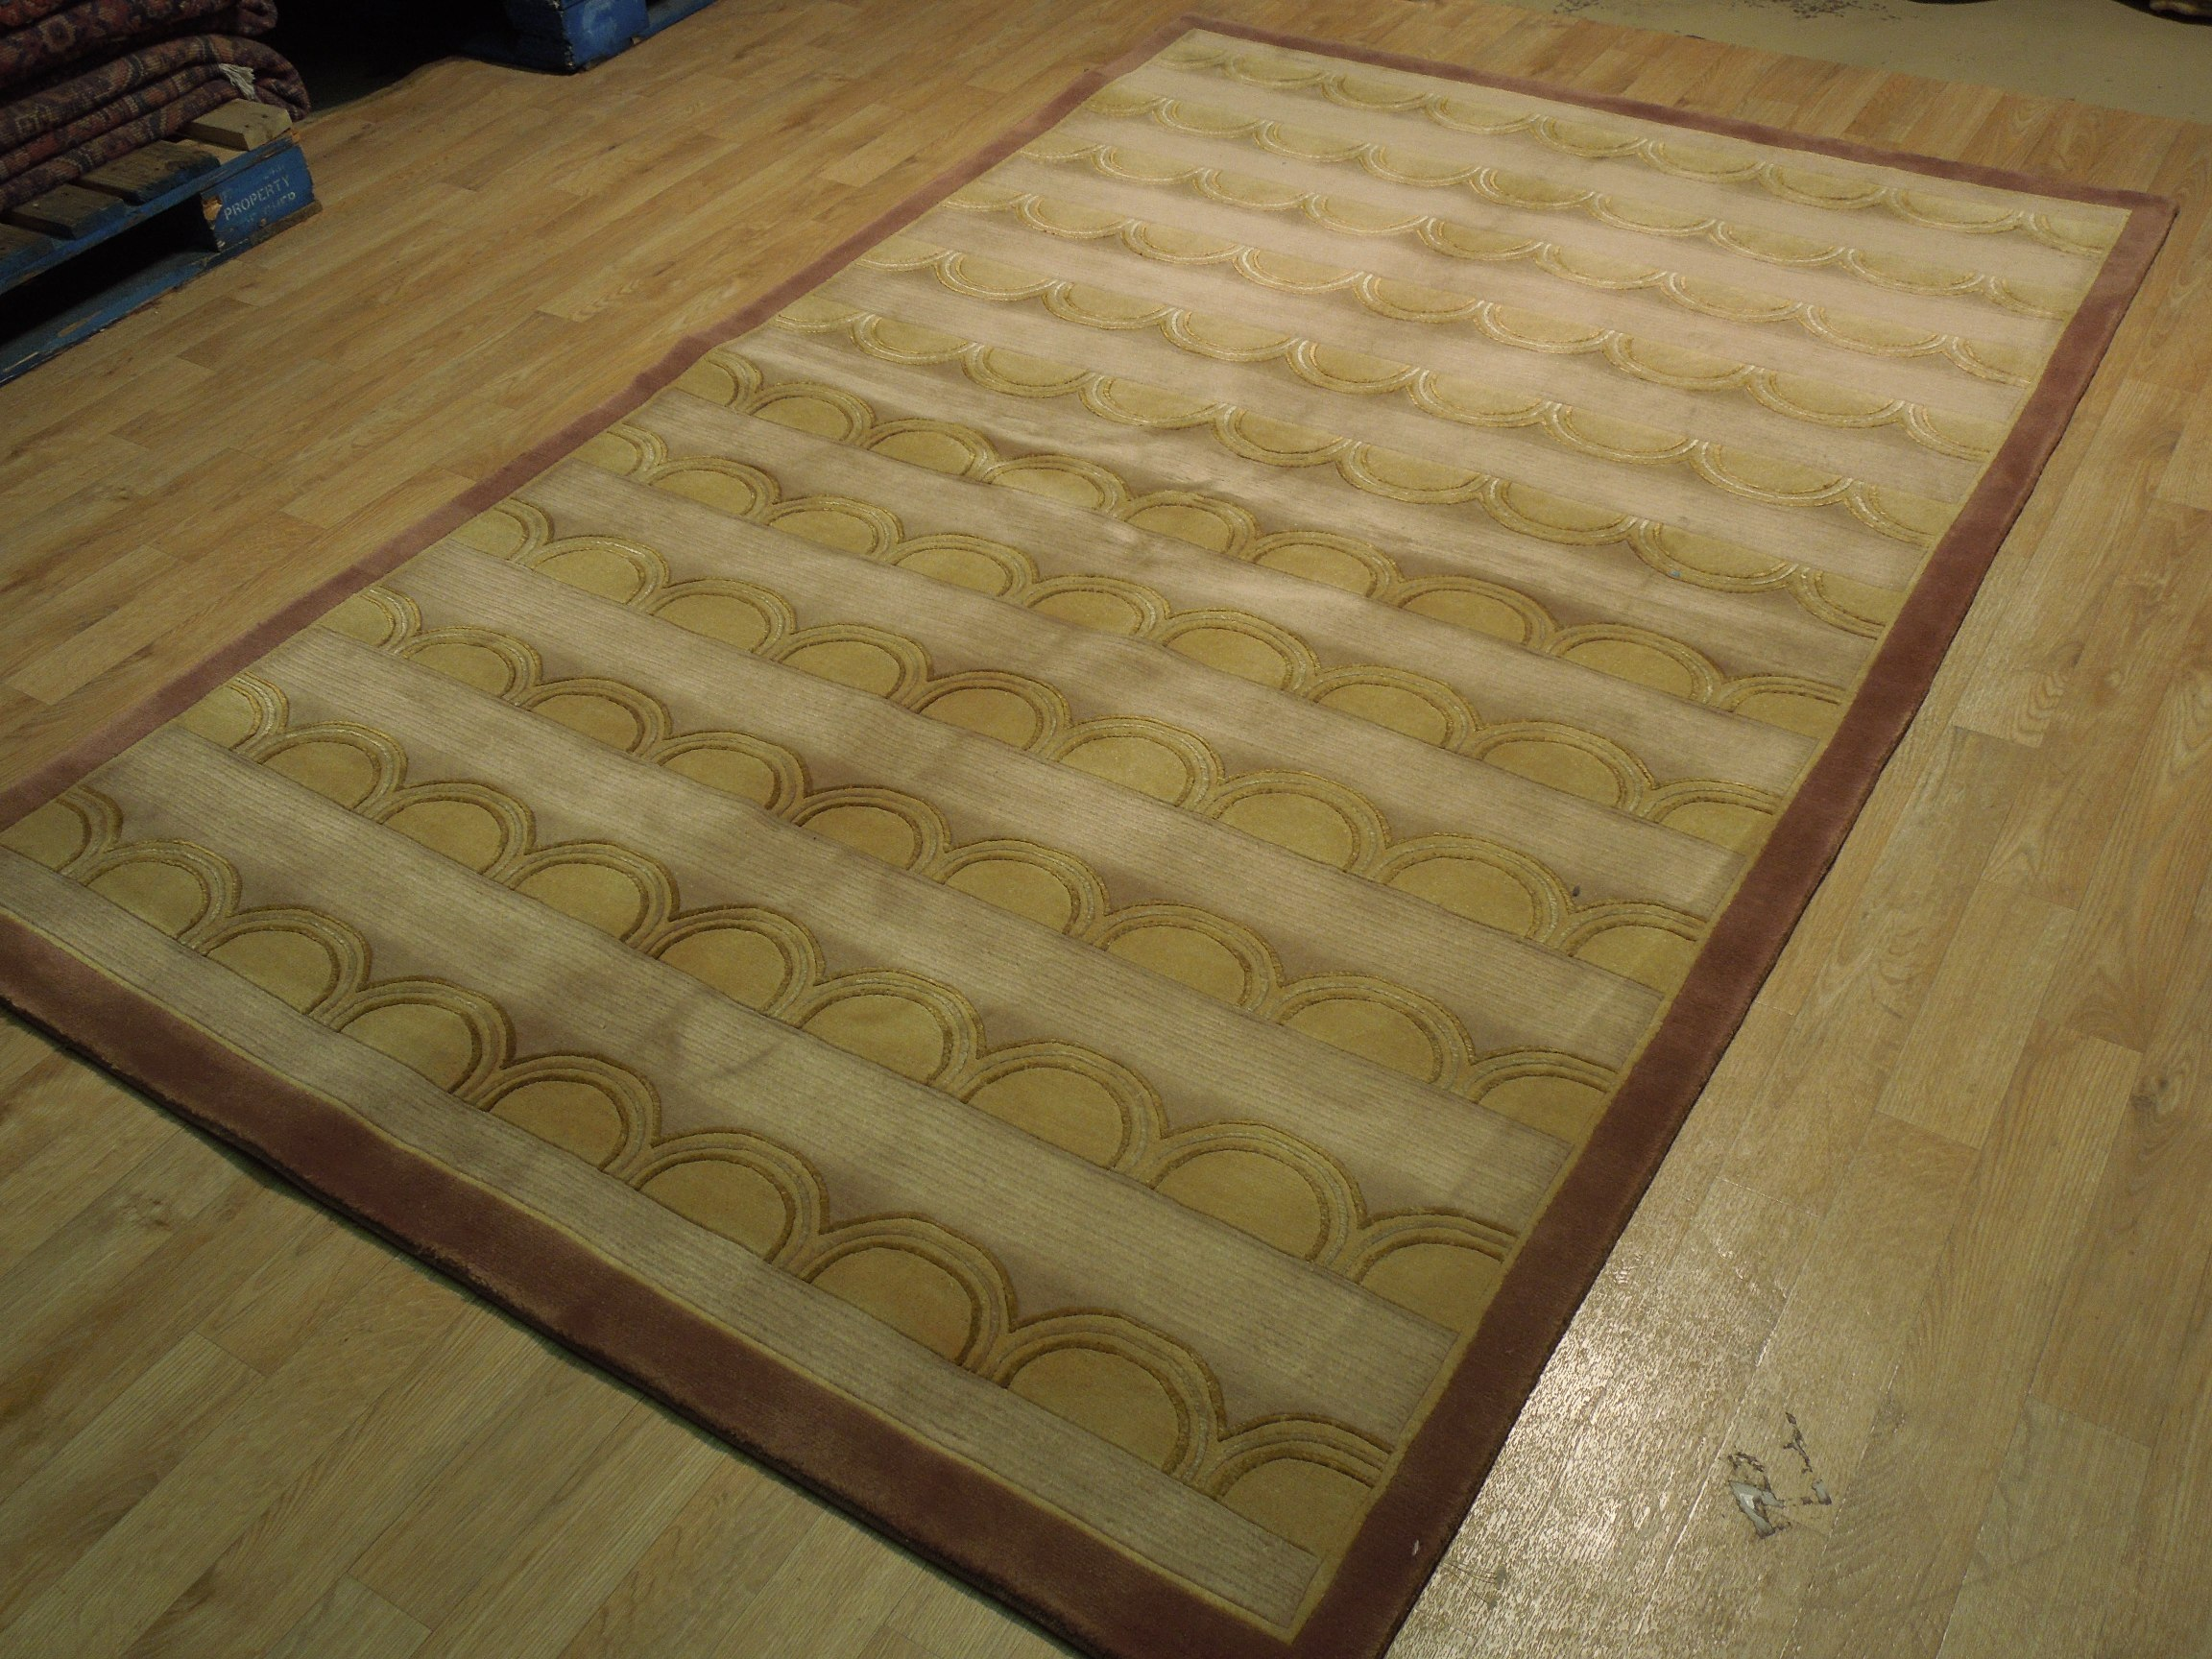 Orignal hand Knotted Area Rug